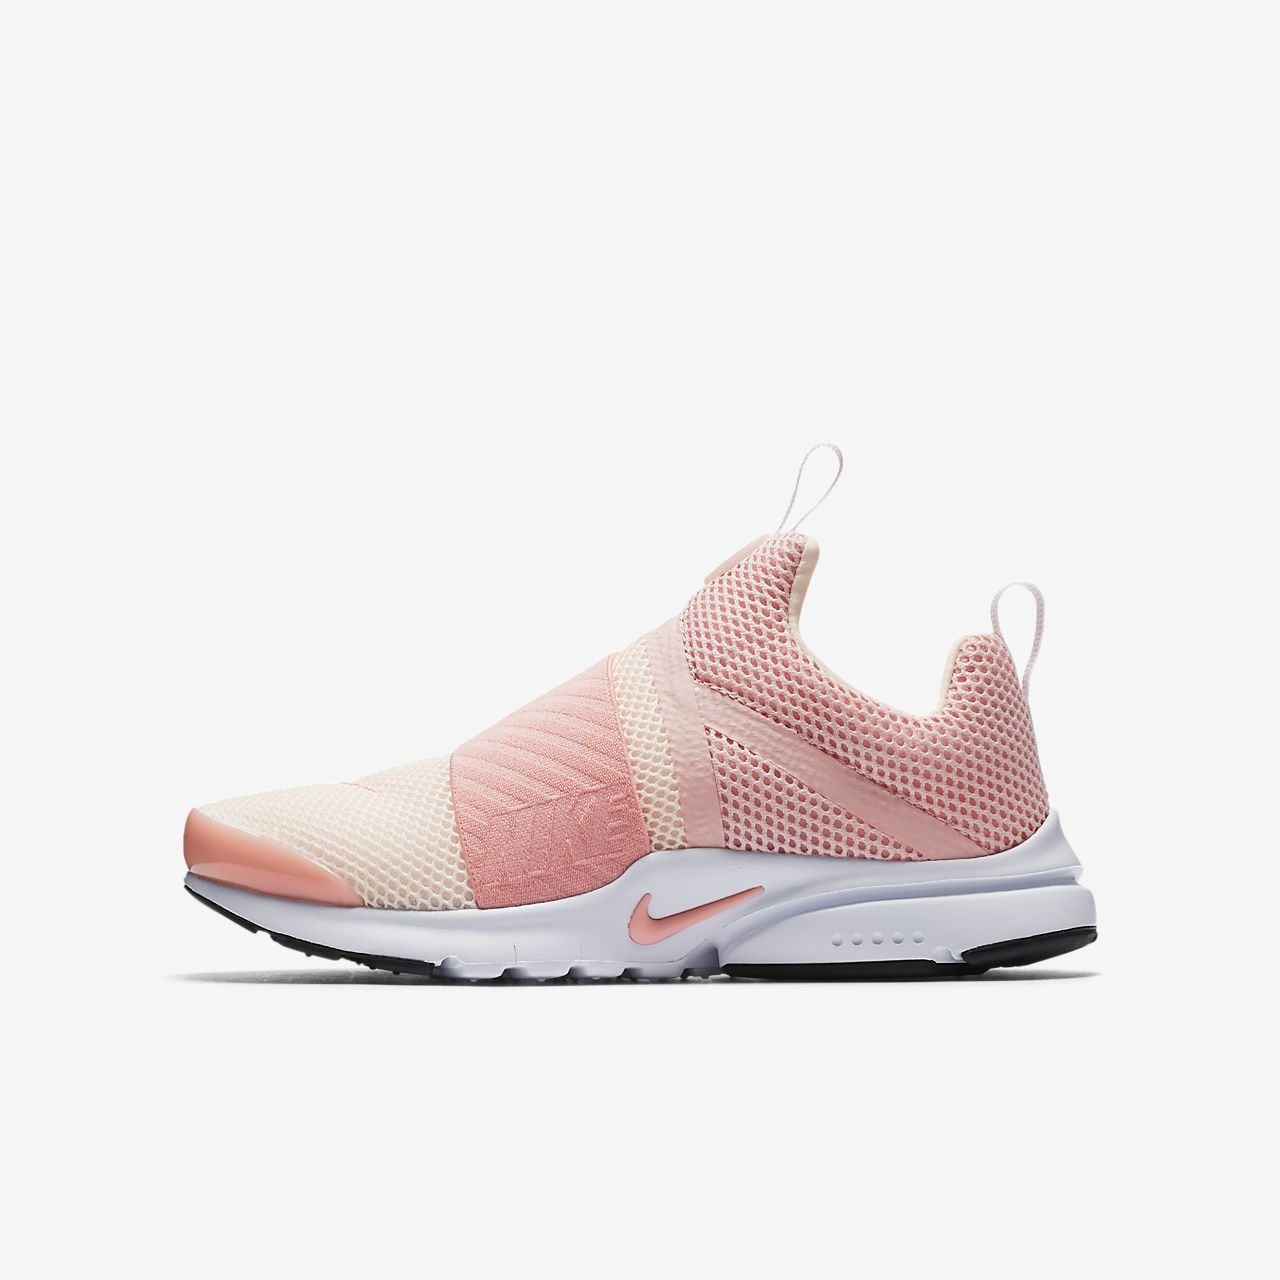 ... Nike Presto Extreme Big Kids' Shoe